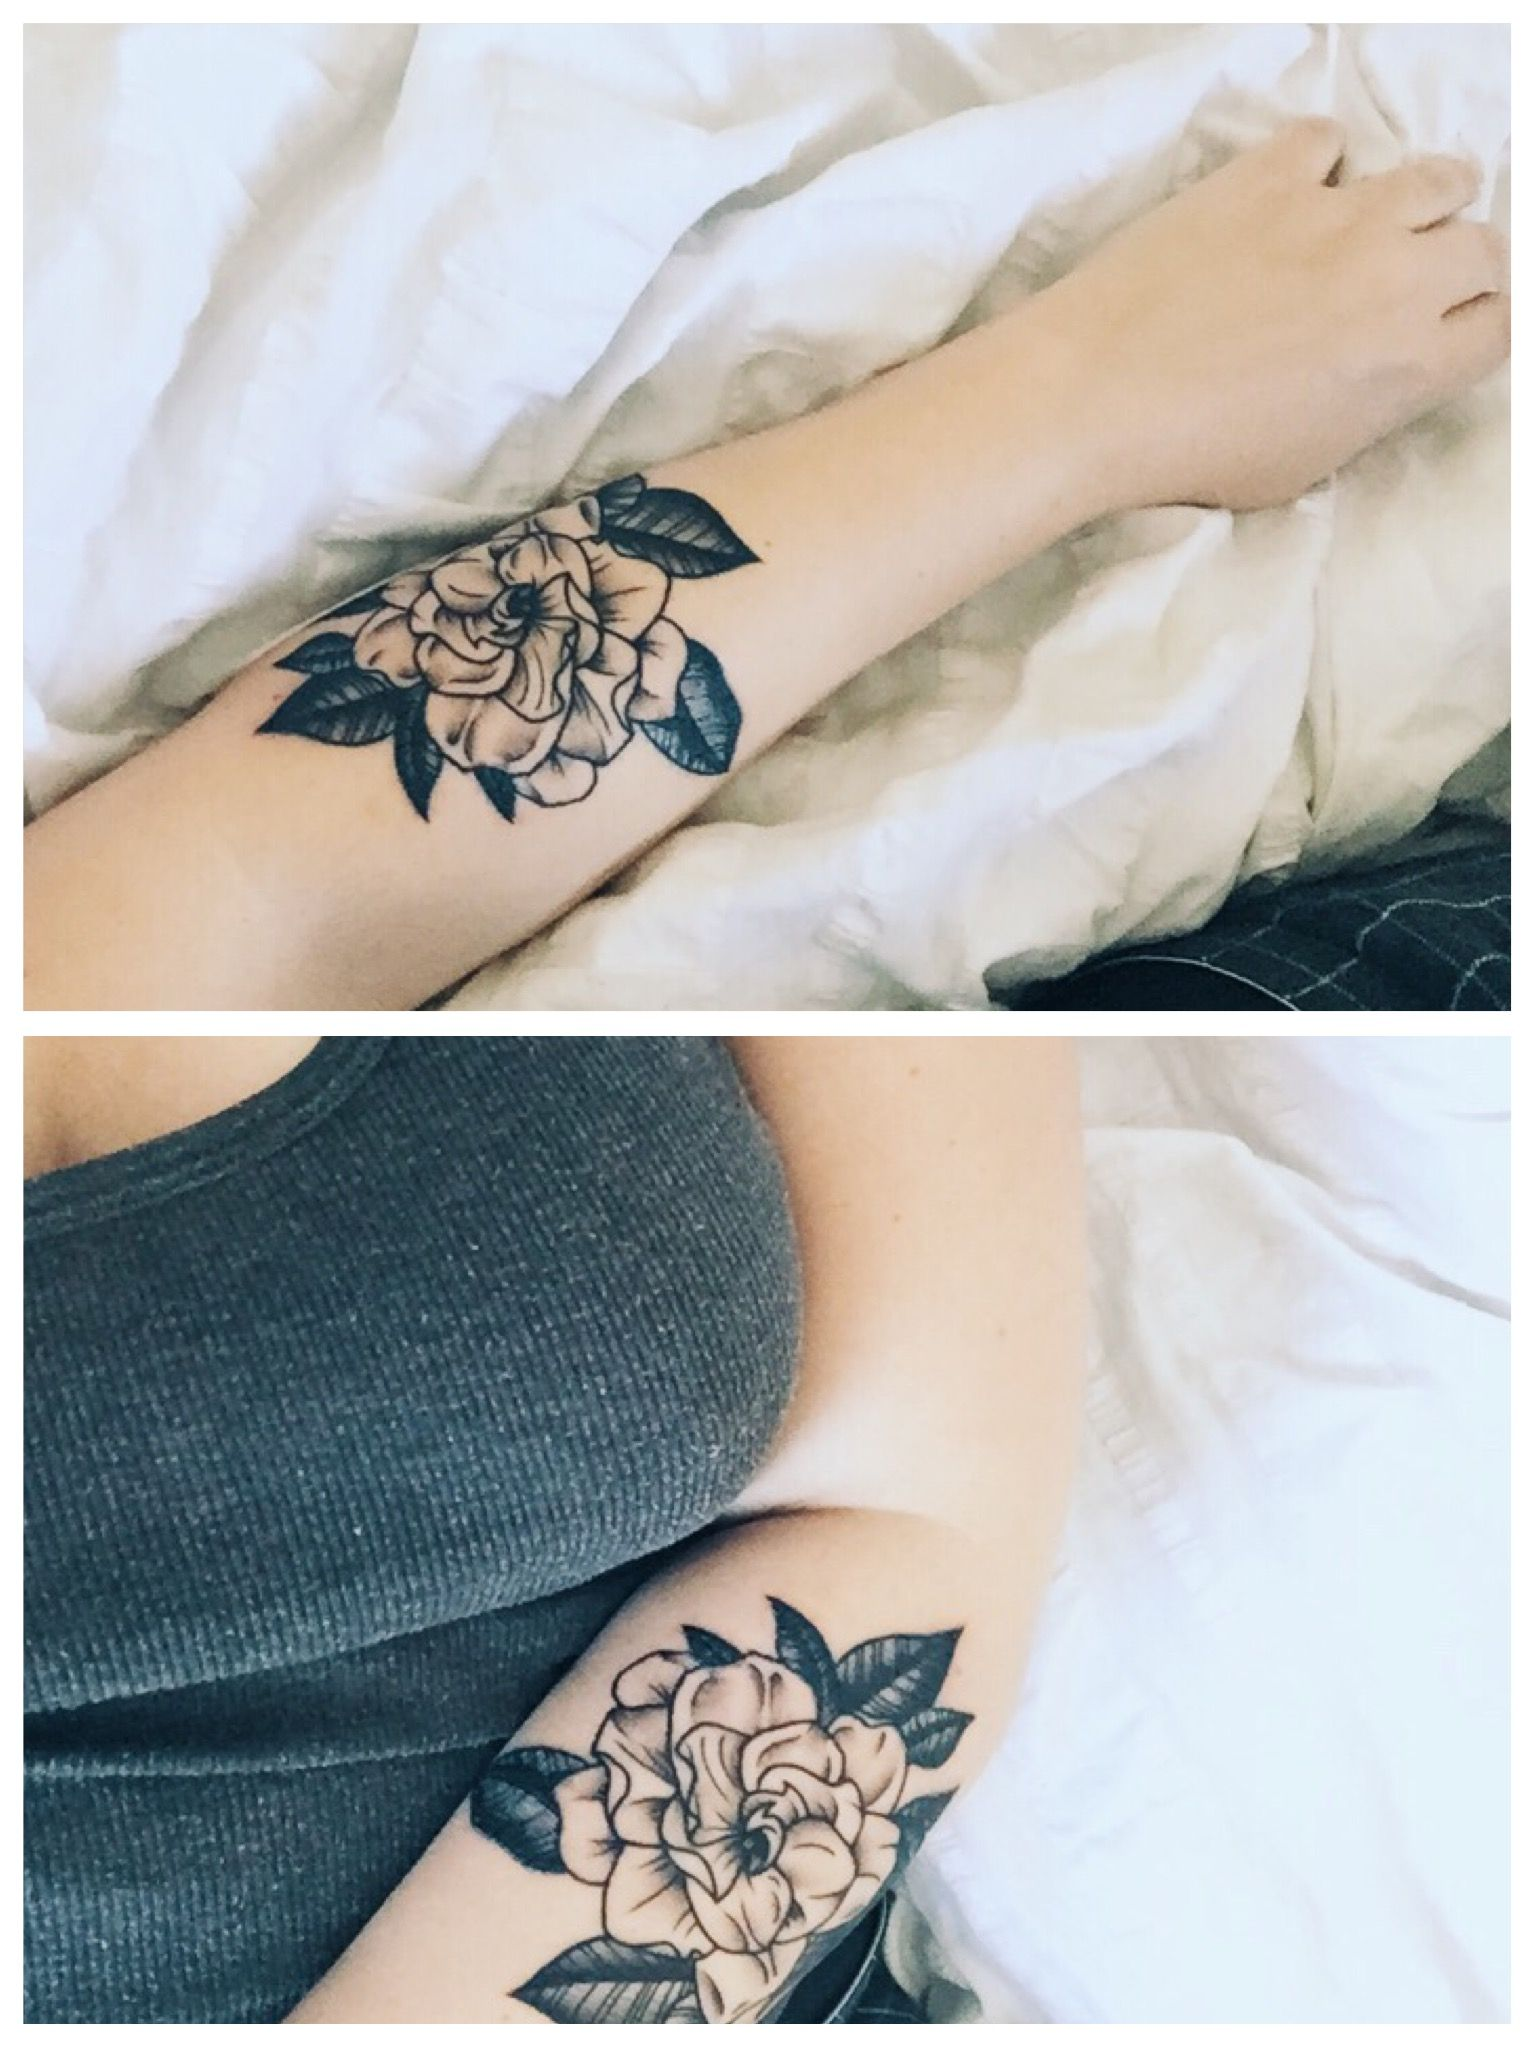 Heyashlie S Black And Grey Gardenia Floral Tattoo By Tyler